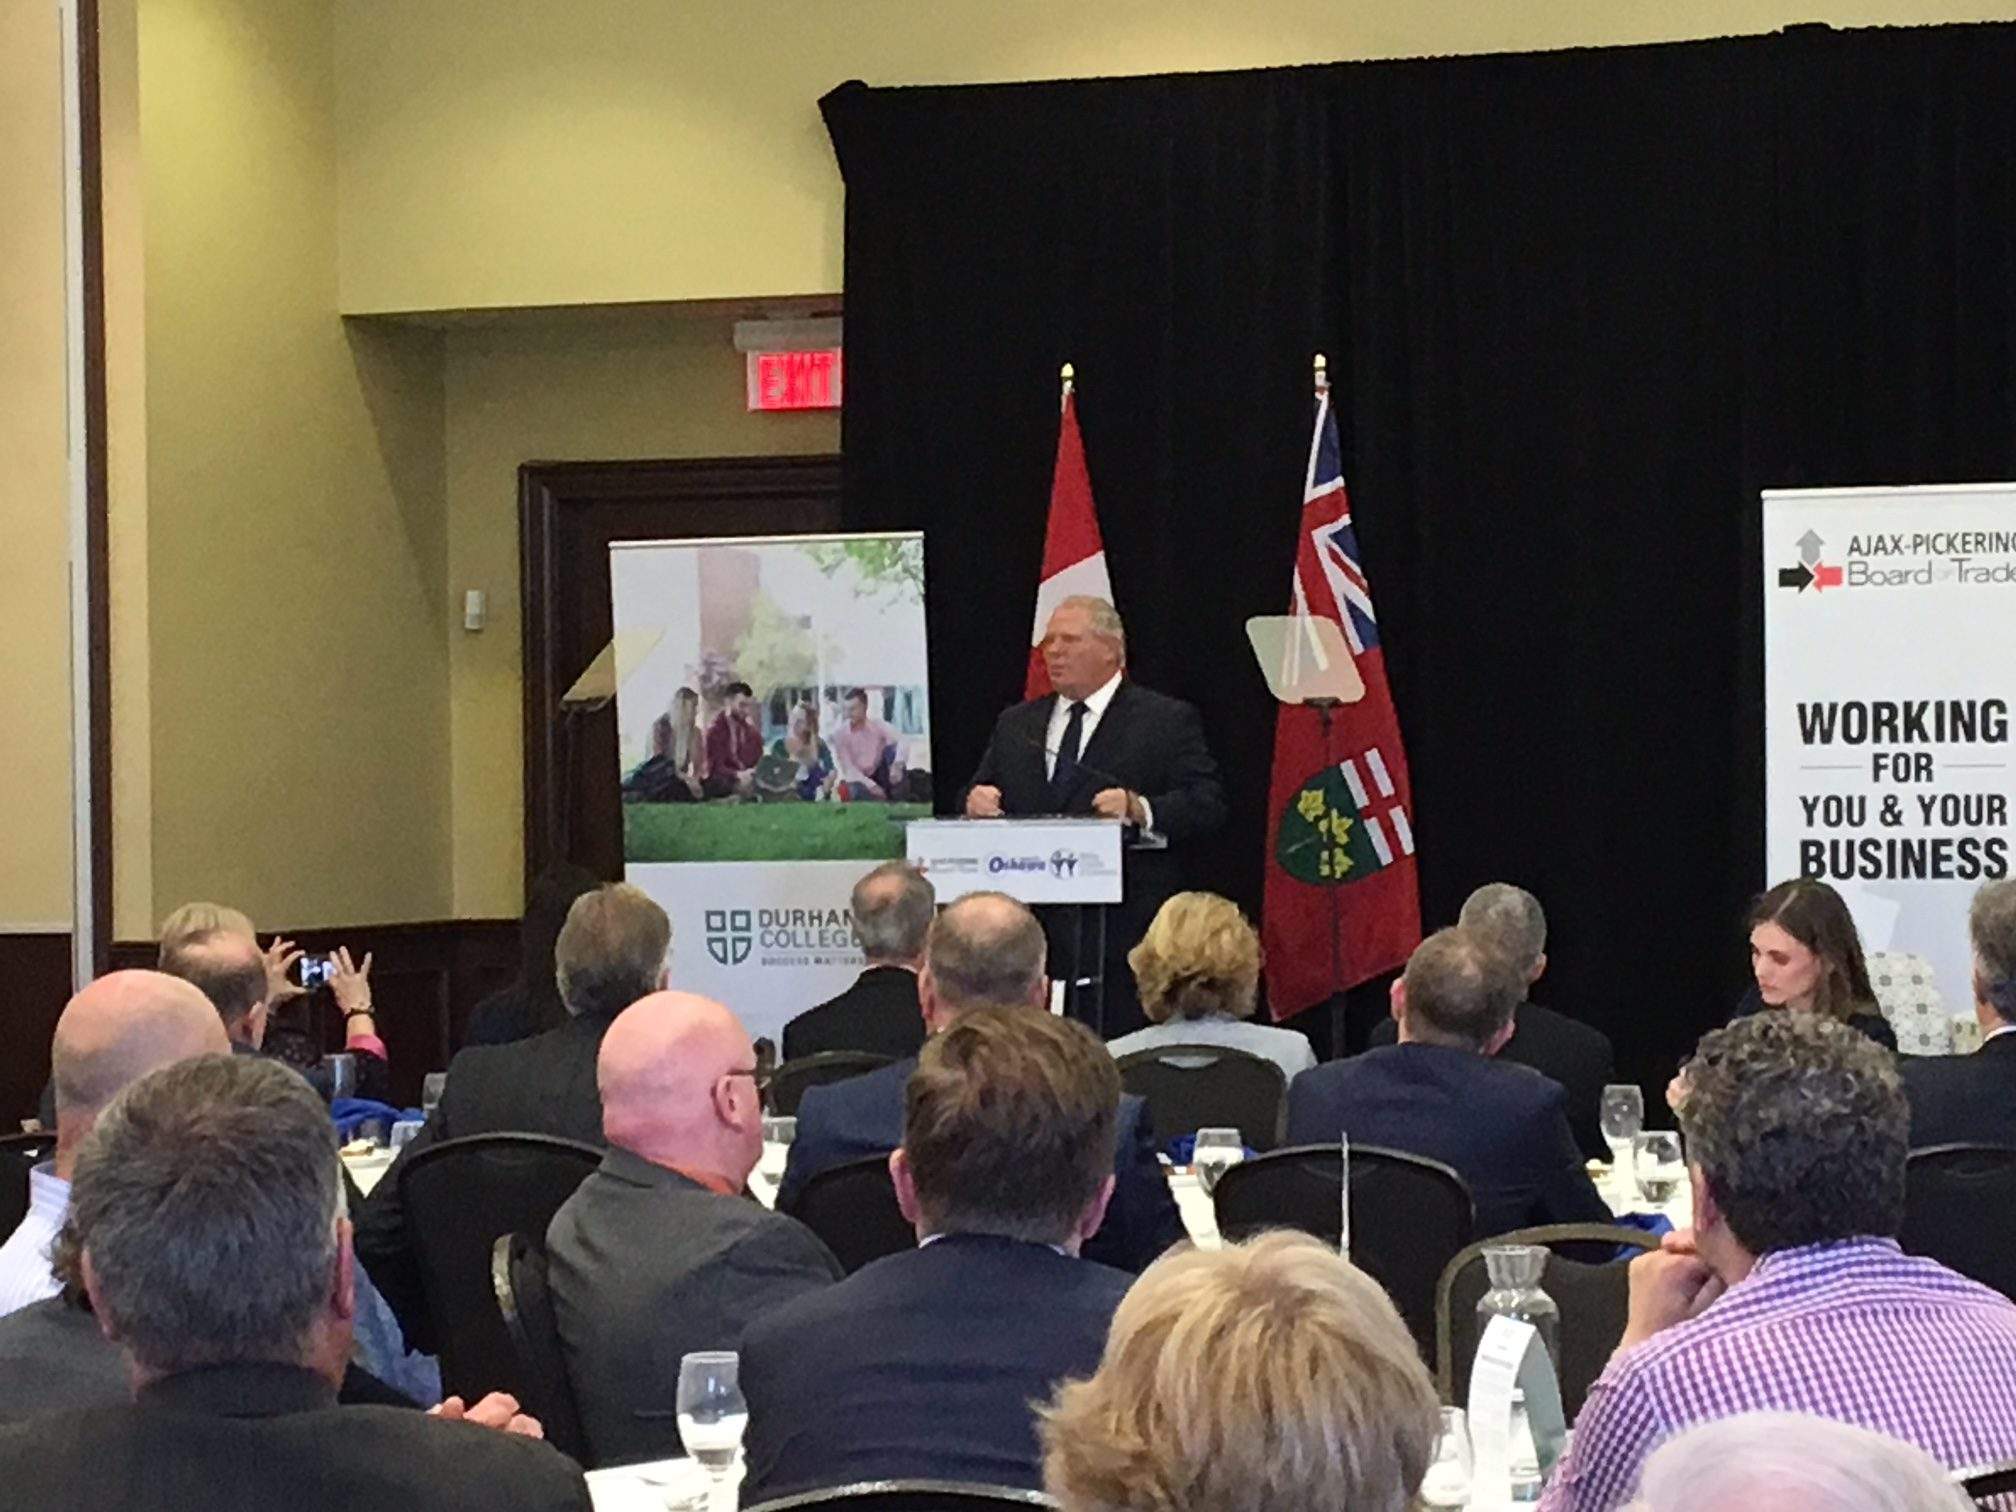 Province offers funding to municipalities and school boards to review budgets to find savings